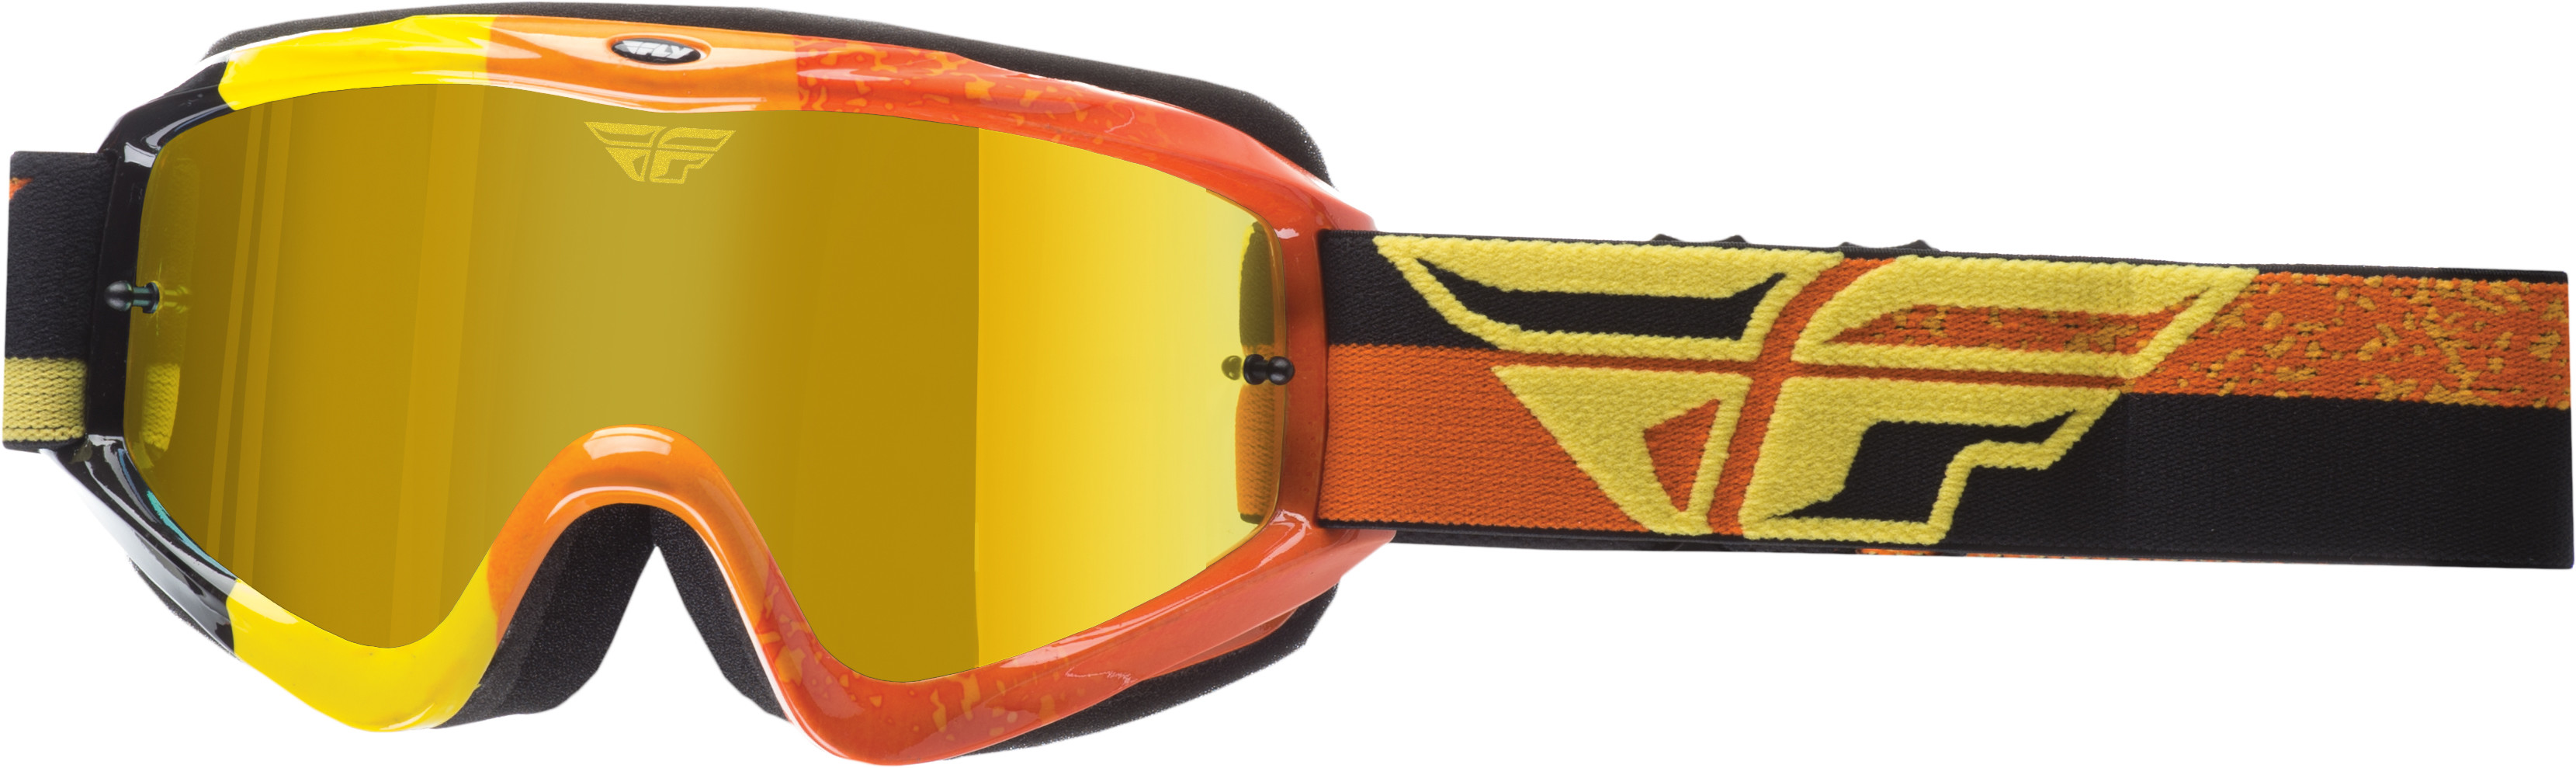 Zone Composite Goggle Yellow/Orange/Black